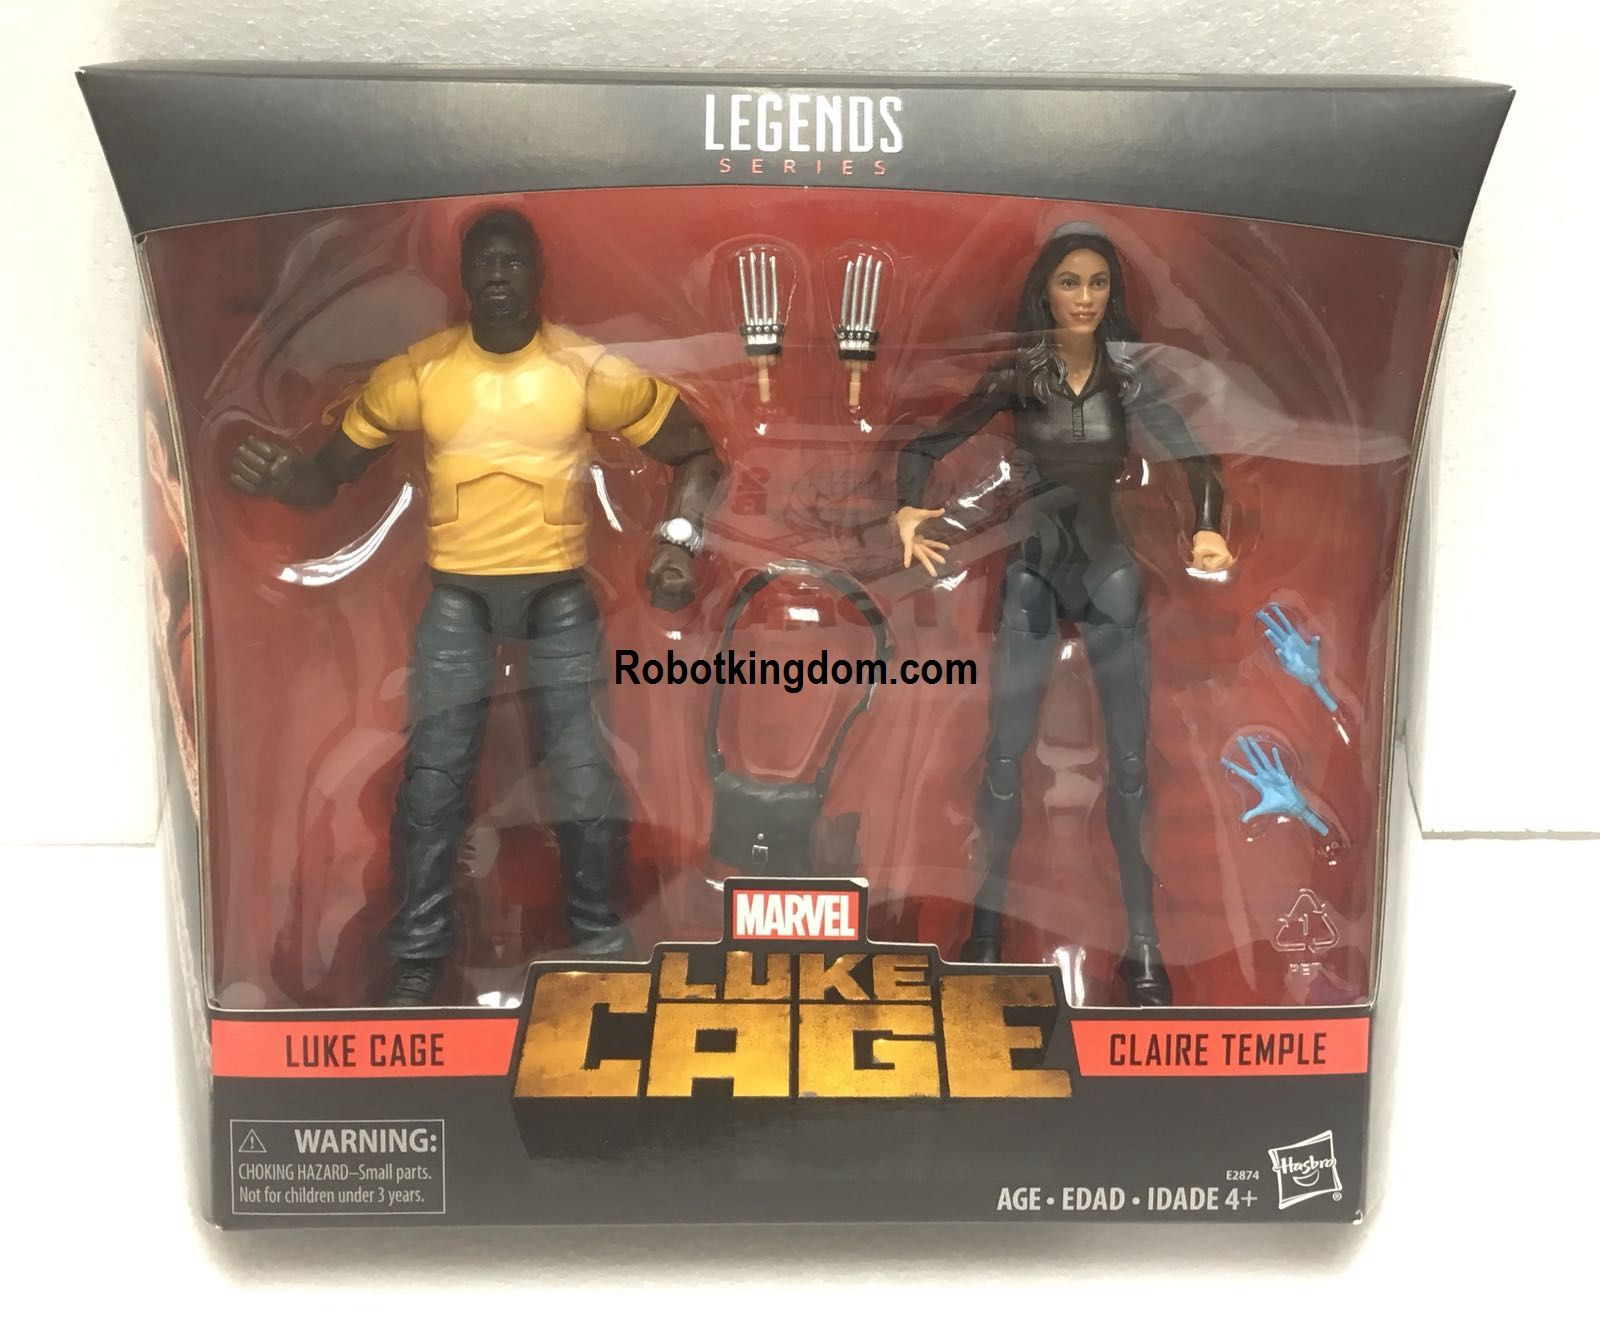 Marvel/'s Luke Cage /& Claire Temple 2-Pack Legends Series Exclusive Hasbro